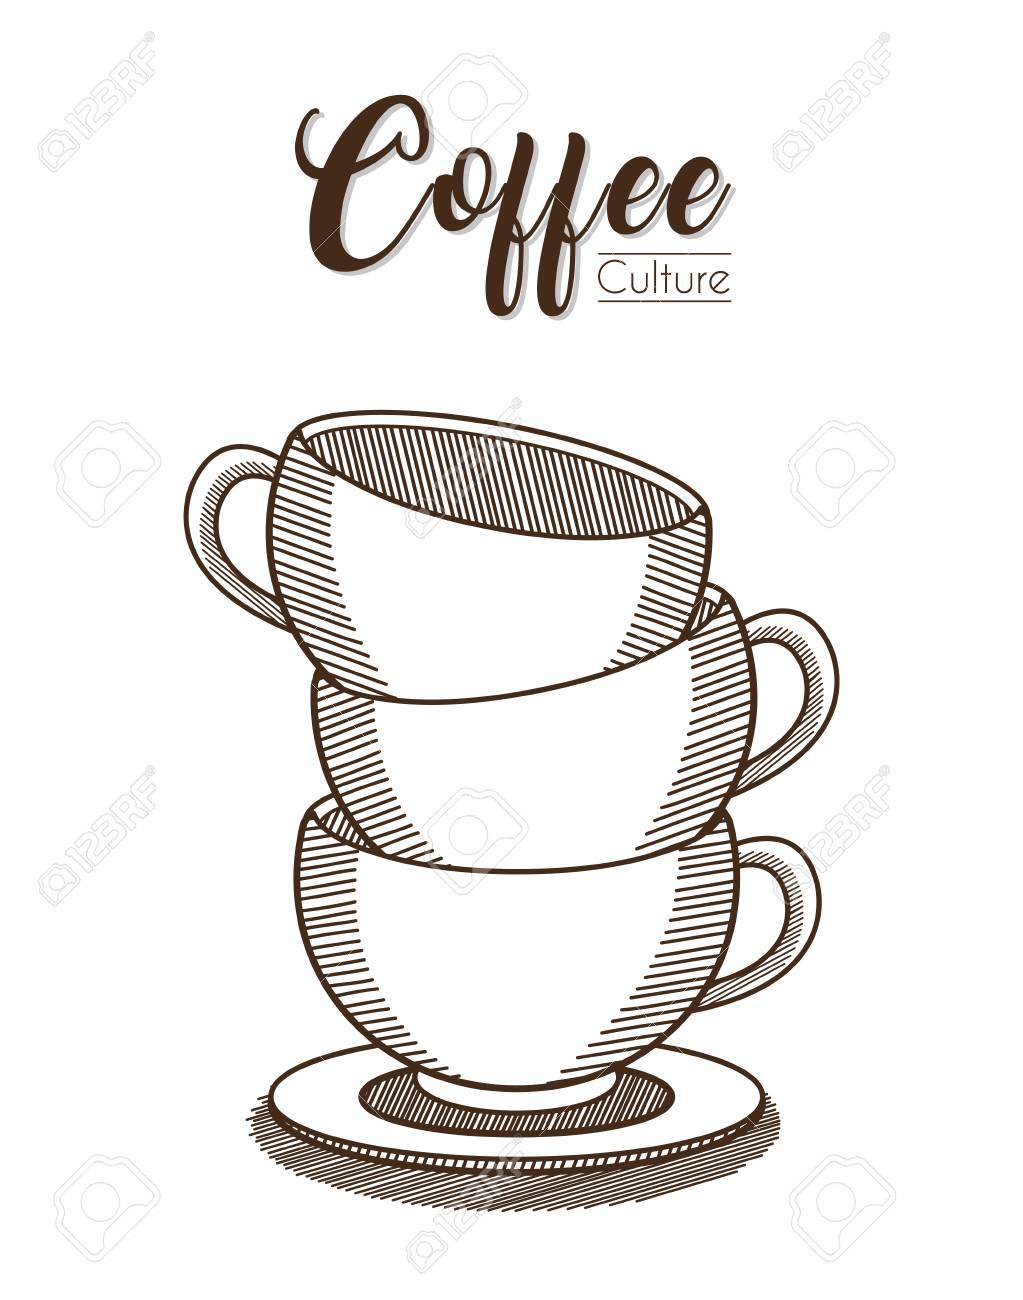 Stacked Coffee cups vector illustration.